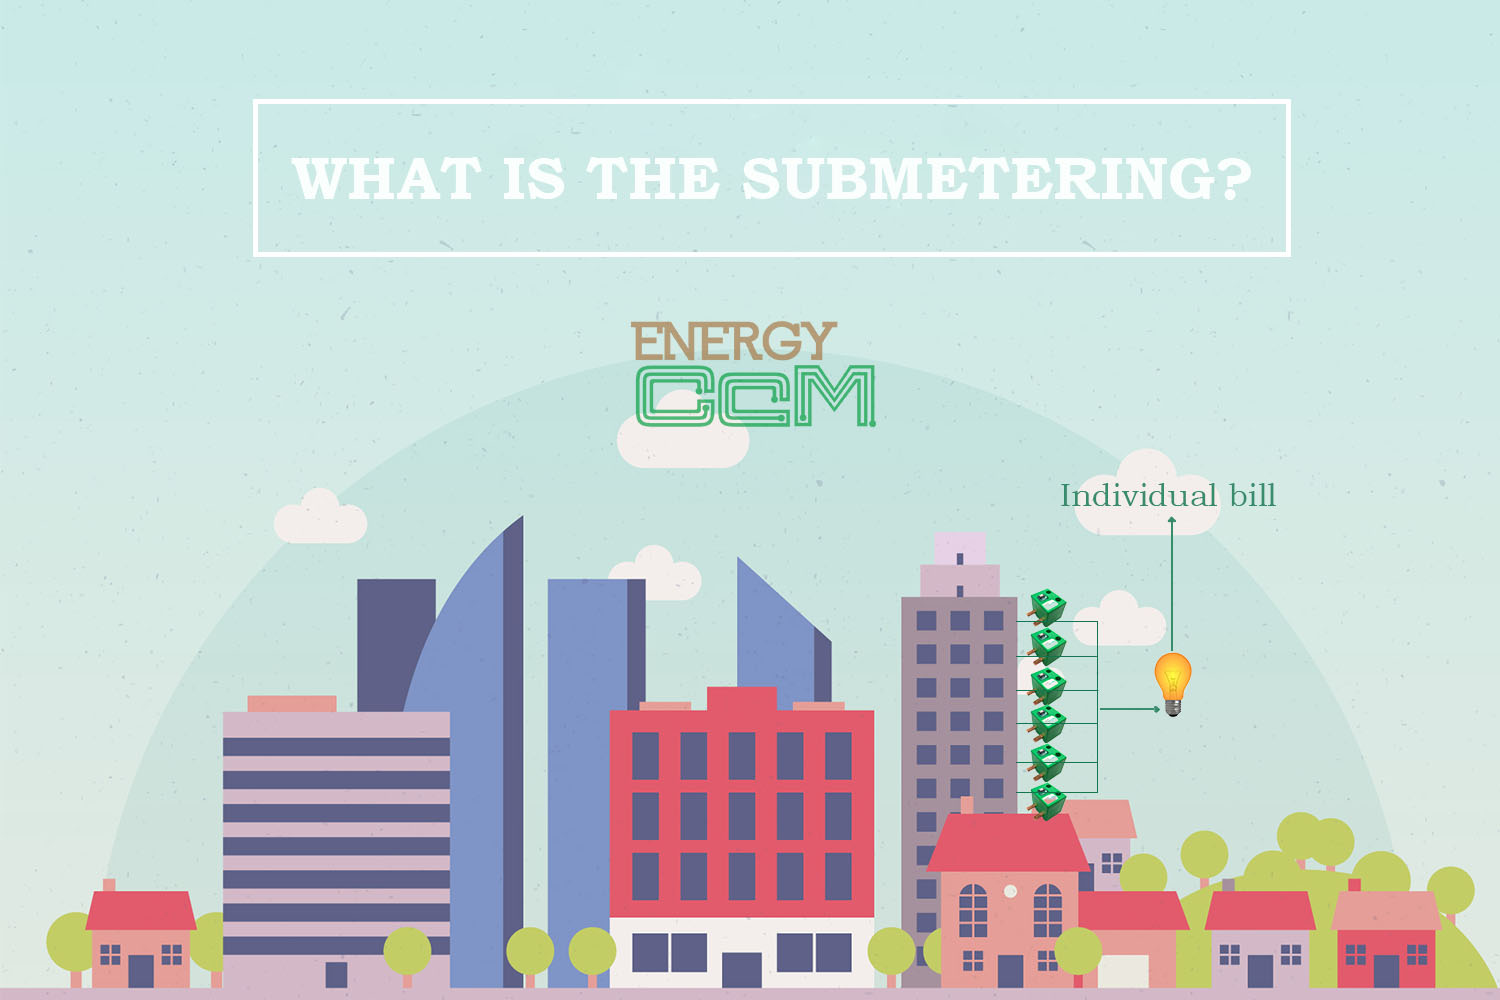 Submetering energy